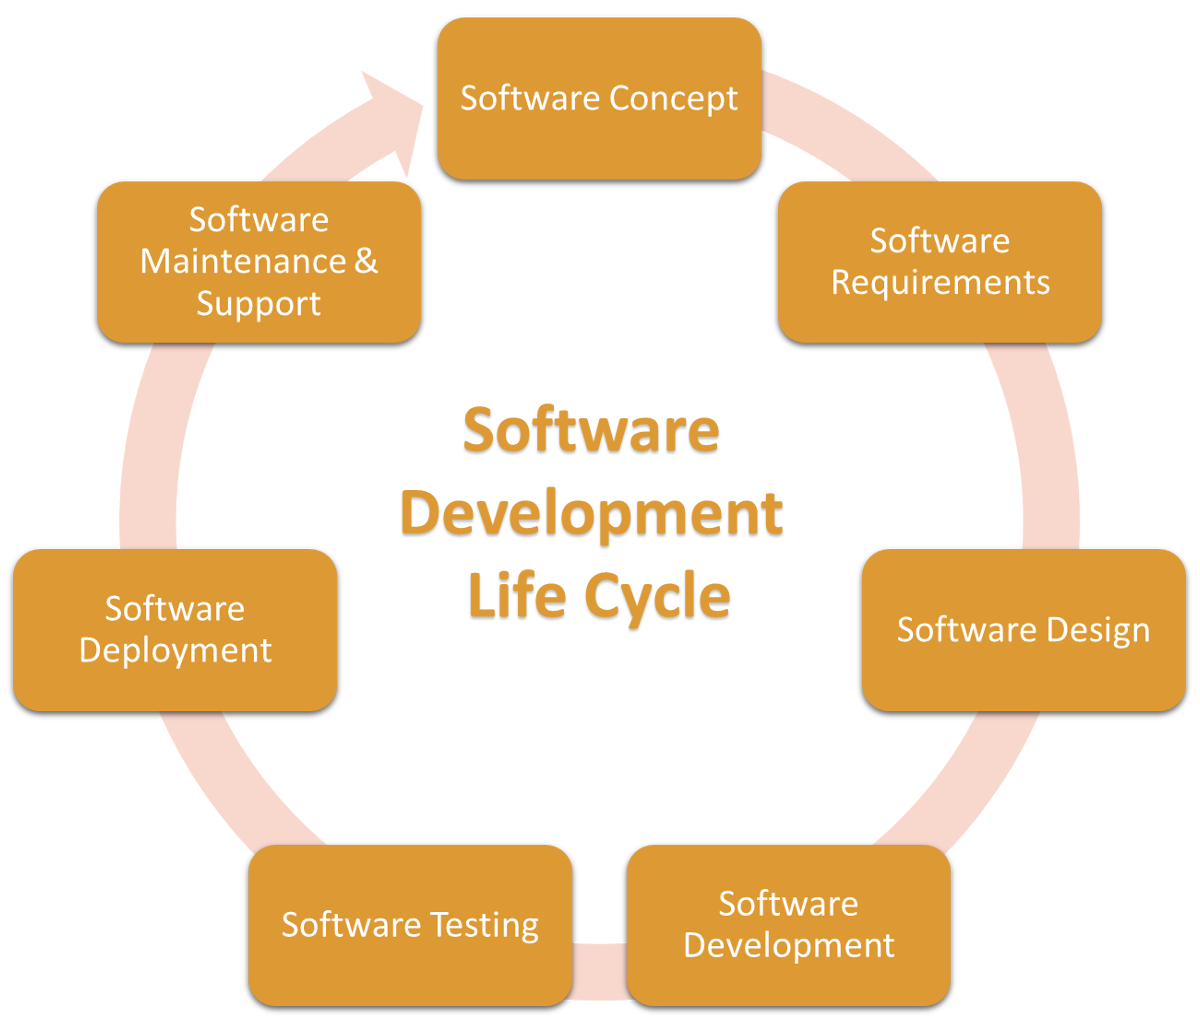 systems development life cycle and information Sdlc, the systems development life cycle (sdlc) is a conceptual model used in project management that describes the stages involved in an information system hence an array of system development life cycle (sdlc) models has been created: fountain, spiral, rapid prototyping.